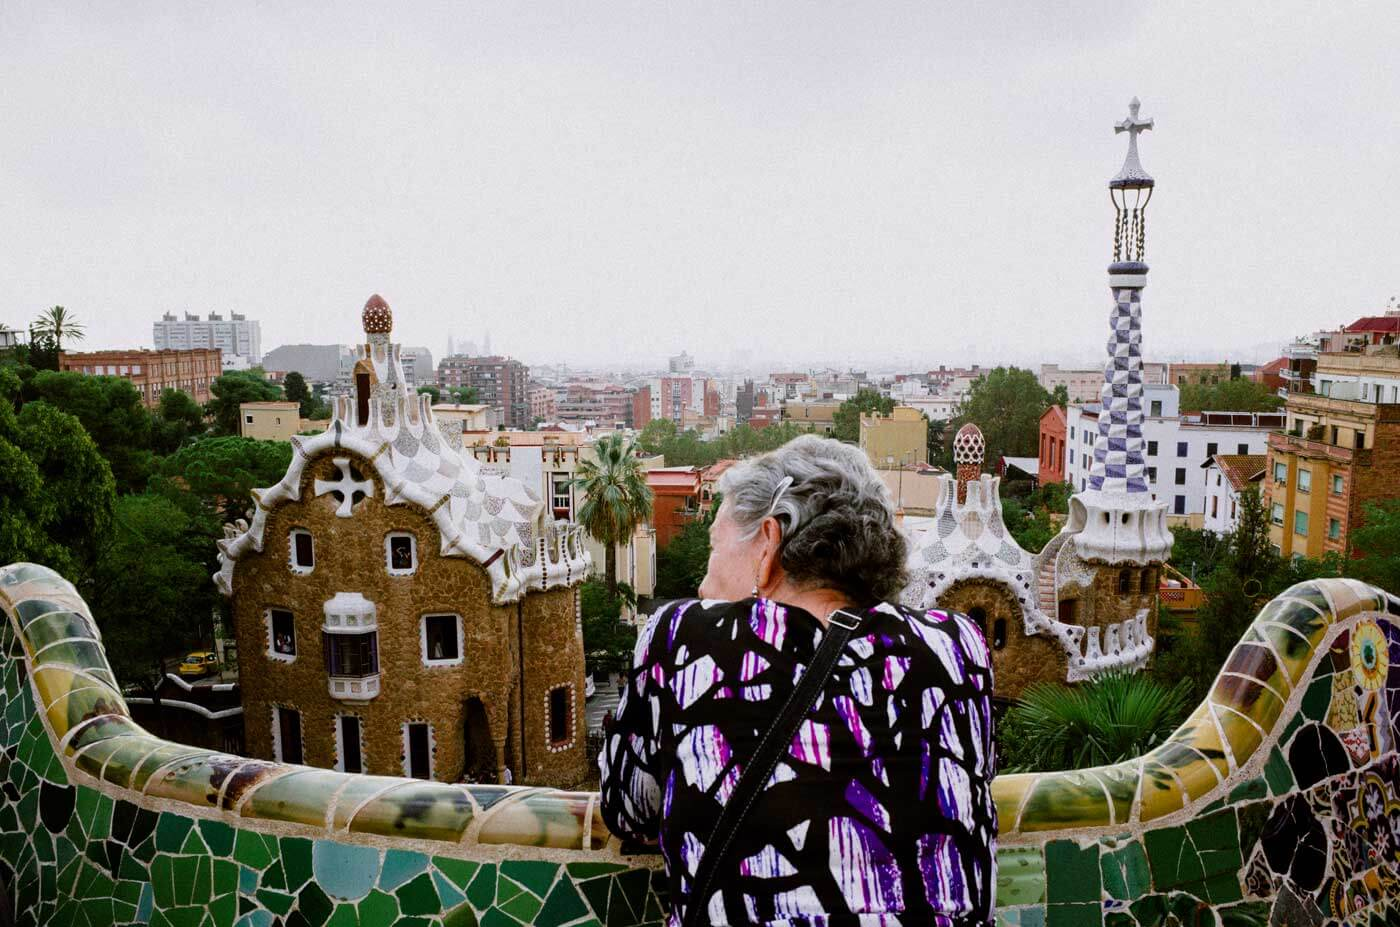 ricoh-gr-II-III-review-camera-point-and-shoot-28mm-pattern-park-guell-gaudi-geometry-architecture